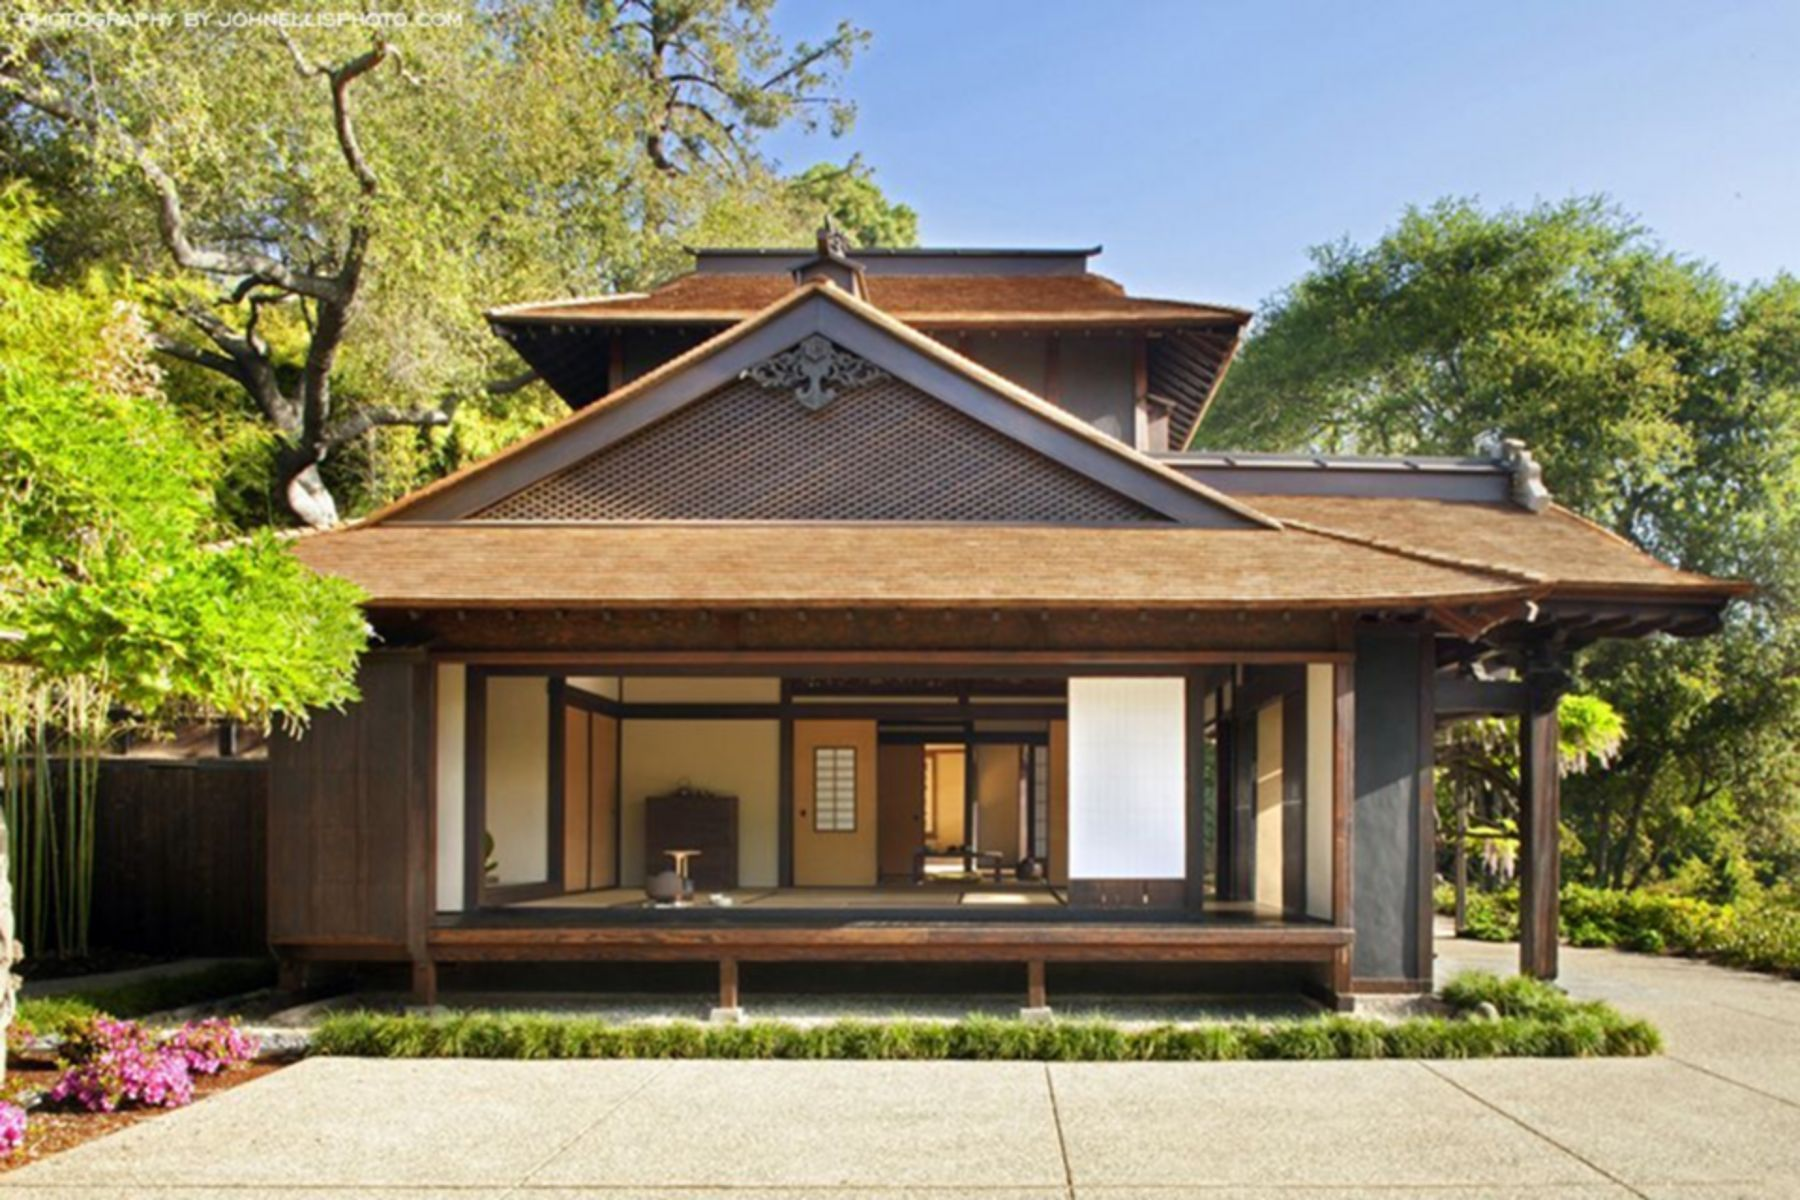 20 Gorgeous Japanese Home Exterior Design Ideas For Cozy Living Stay Moolton In 2020 Japanese Modern House Japanese Home Design House Architecture Design,Hsn Jewelry Designers